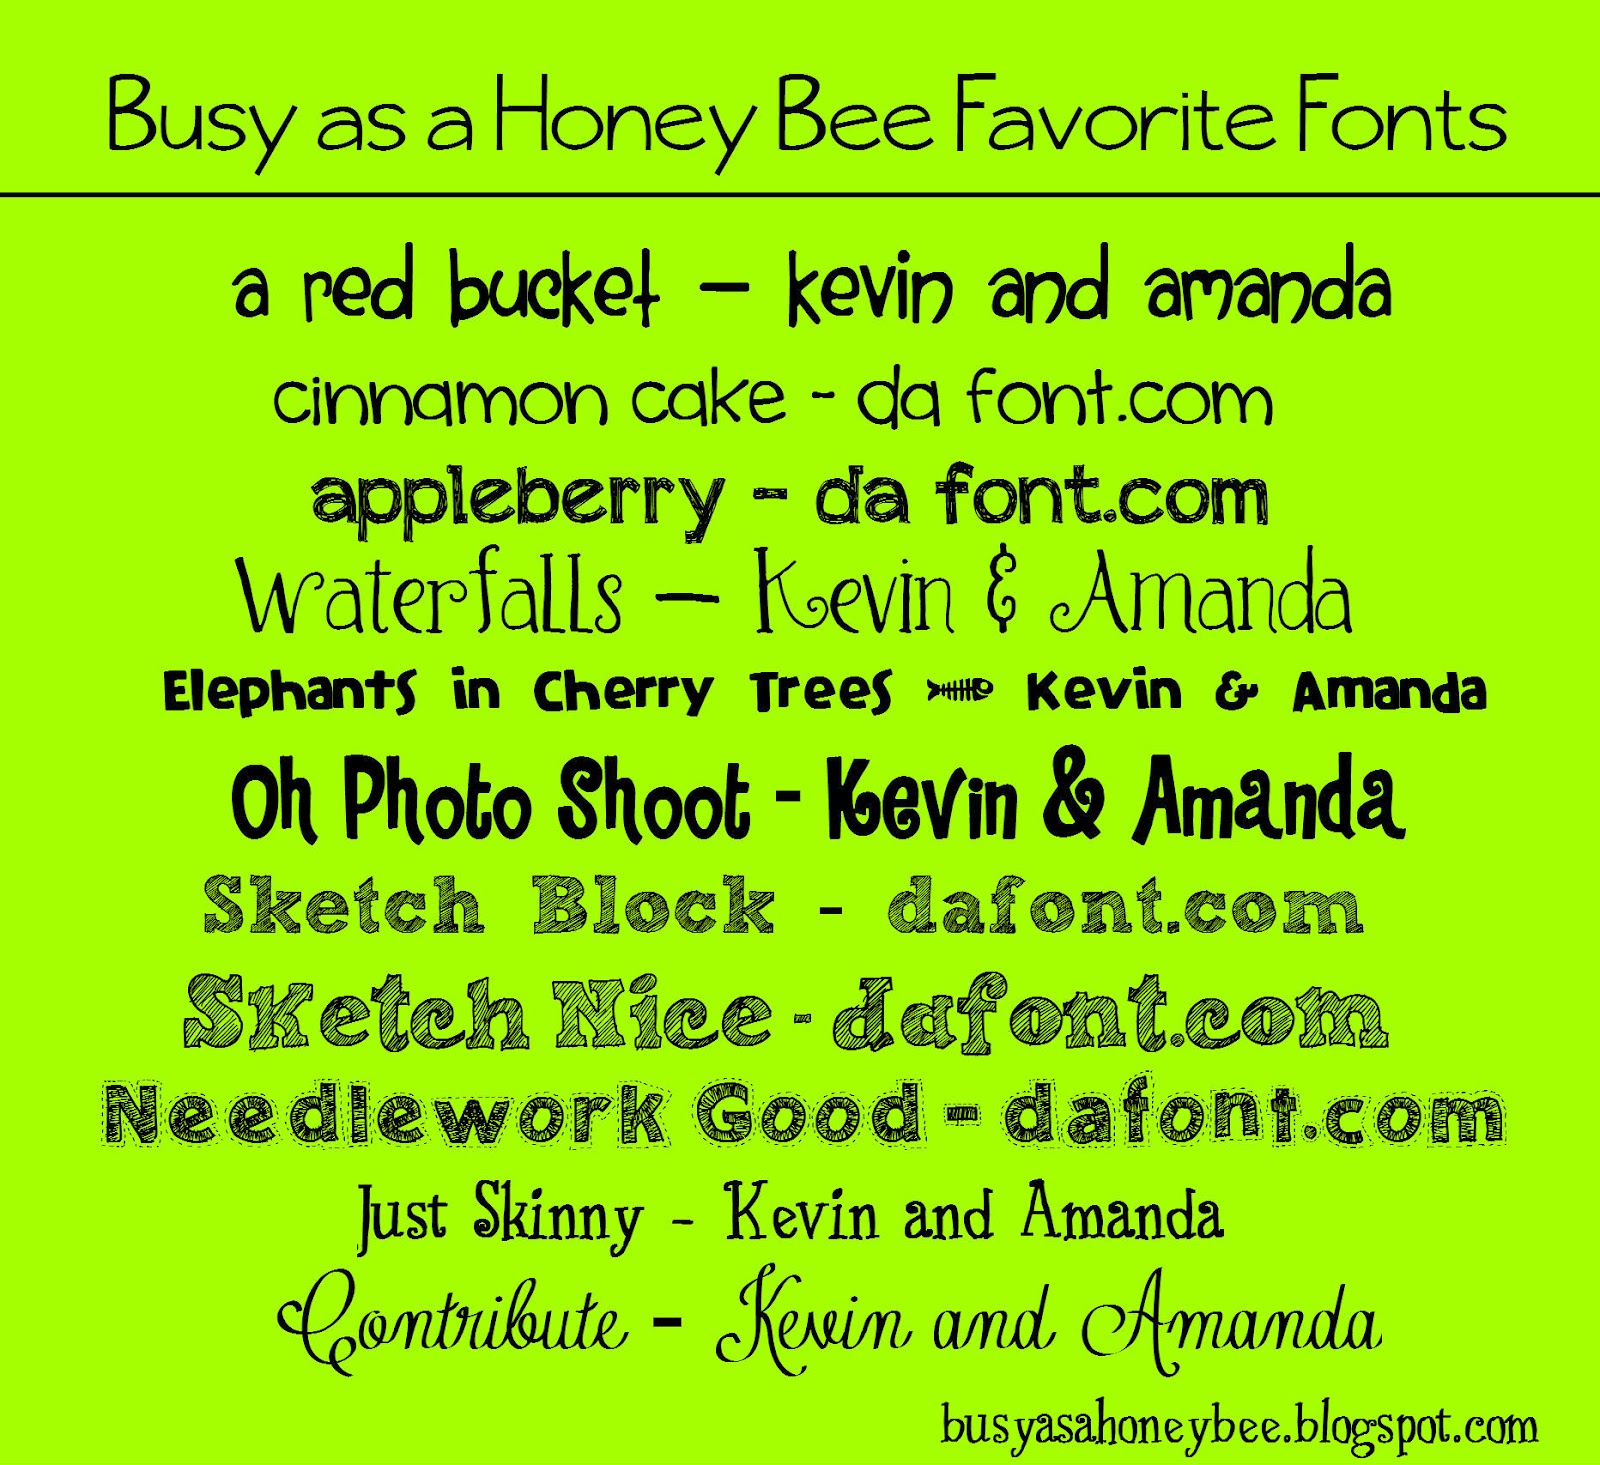 Busy as a Honey Bee: Fonts, fonts, fonts!